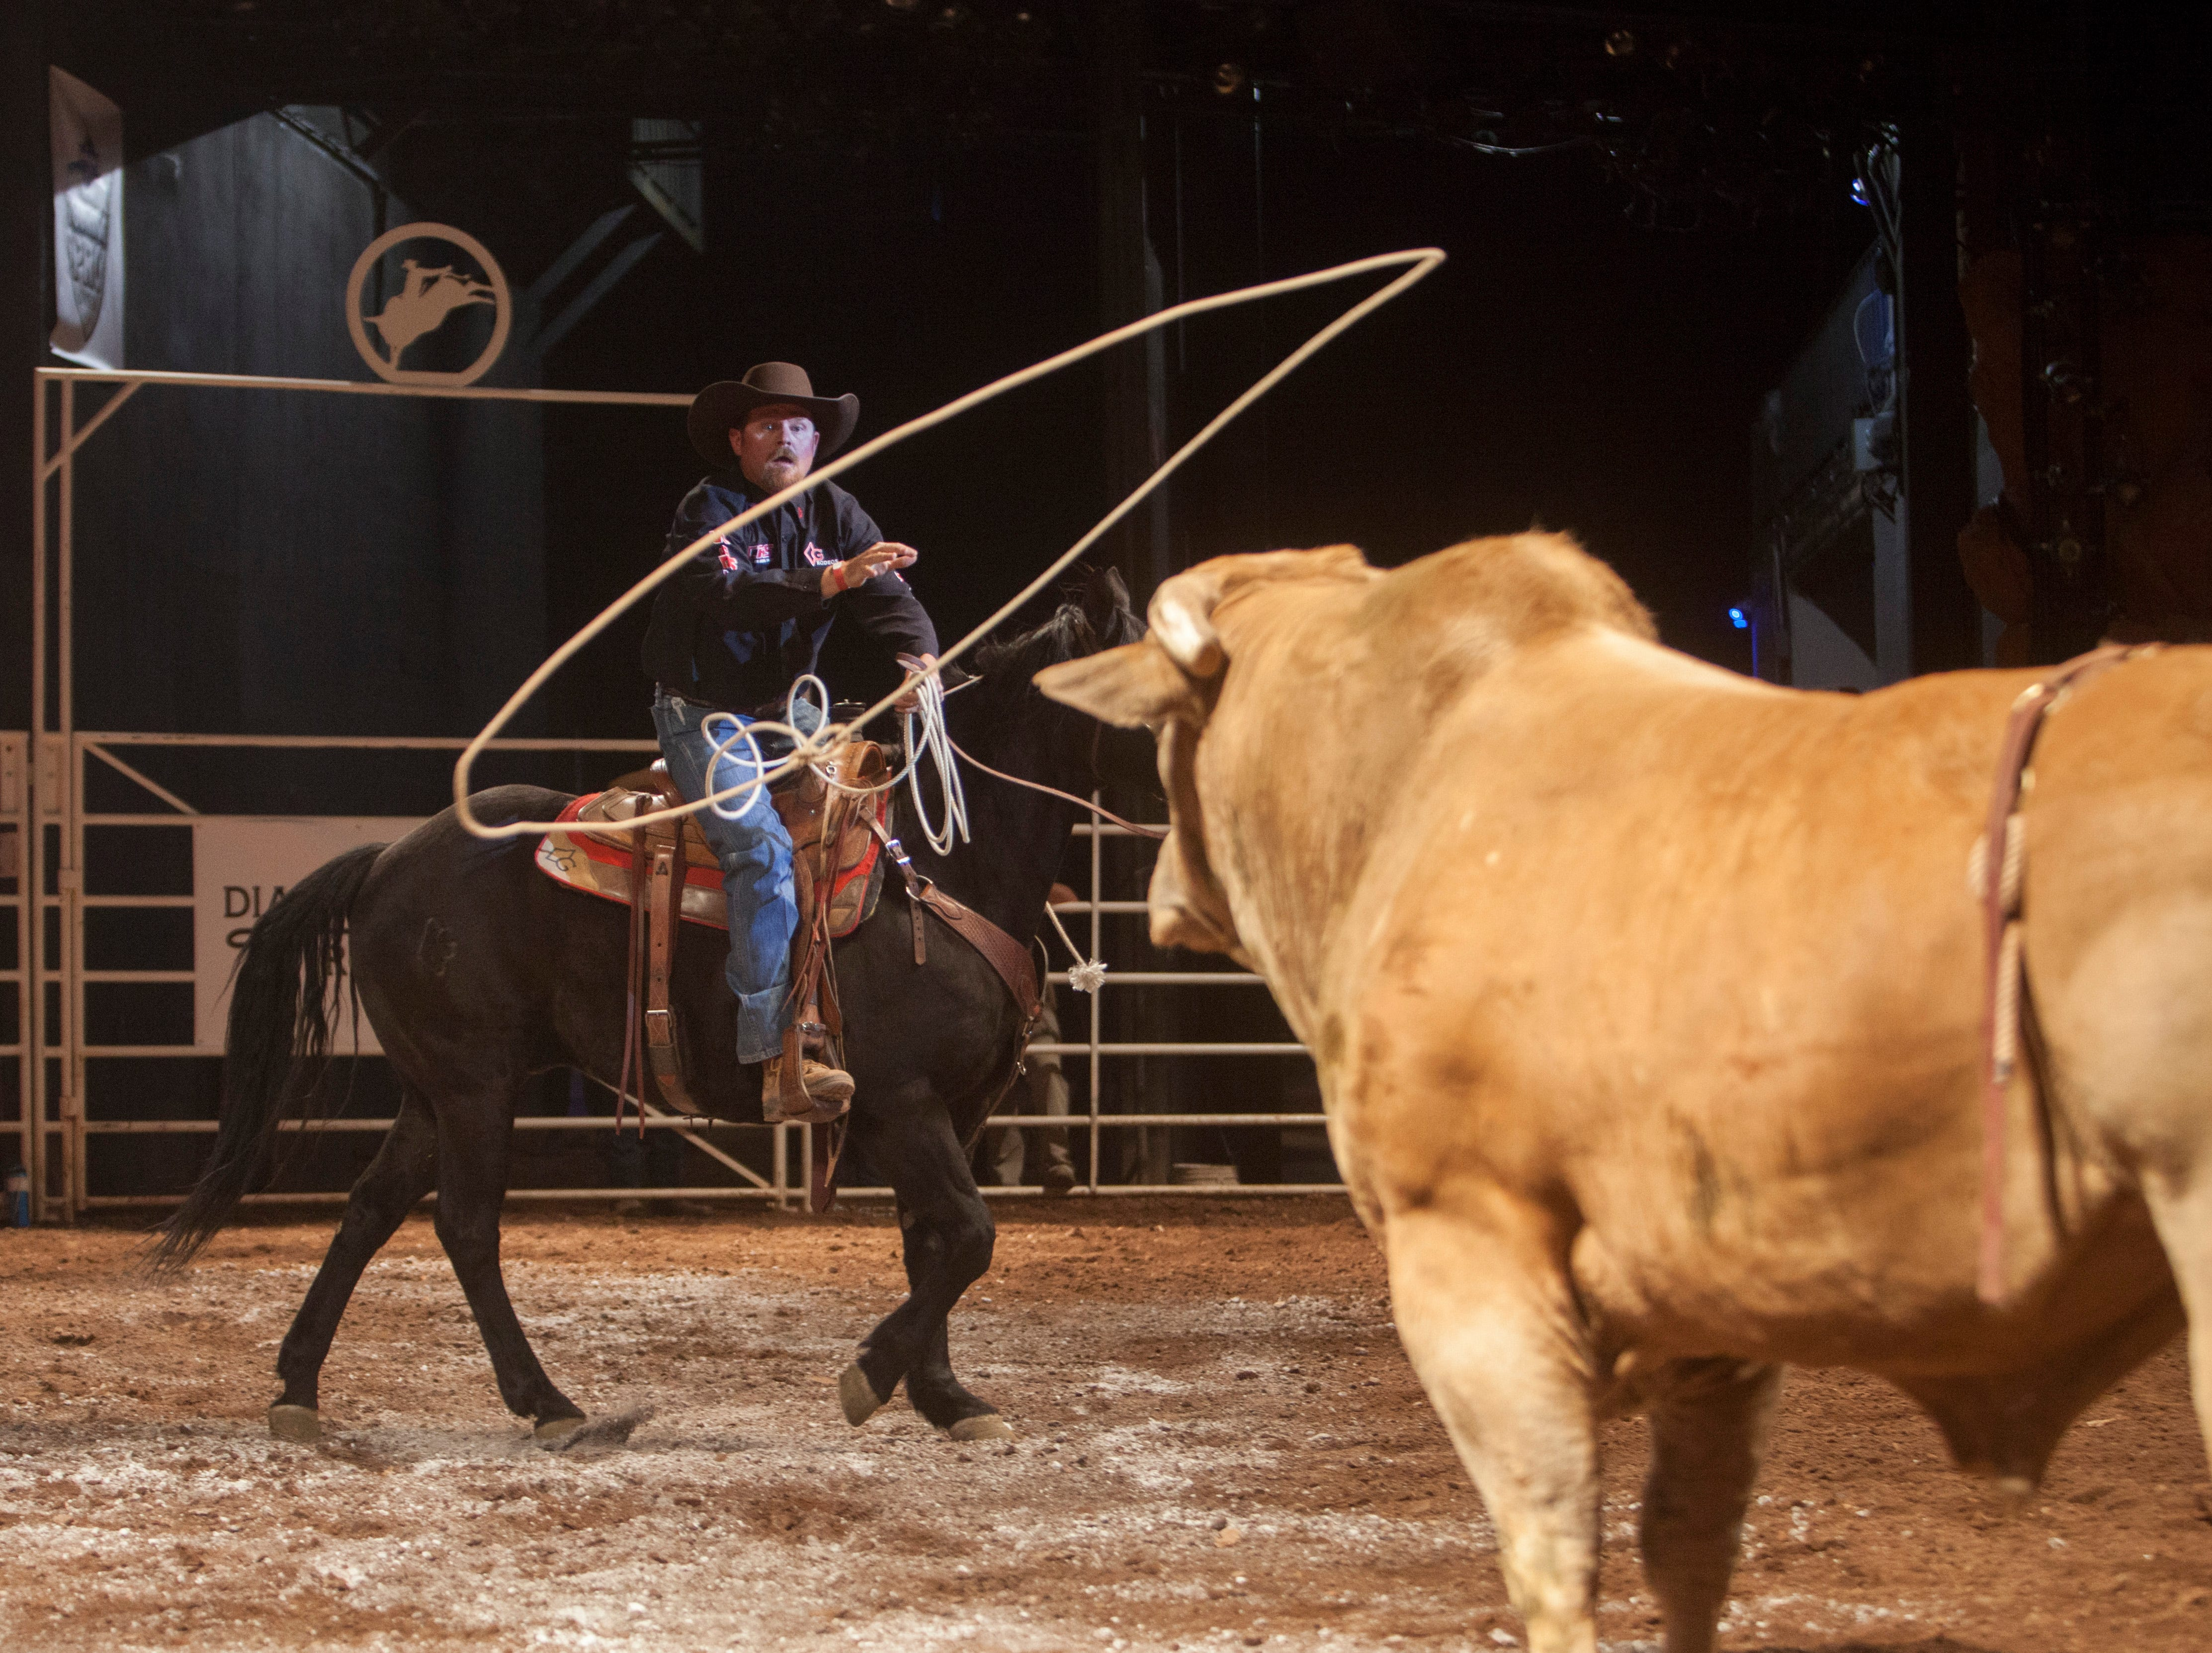 Contestants take their turns in the ring during the Professional Bull Riders event at Tuacahn Thursday, April 5, 2018.